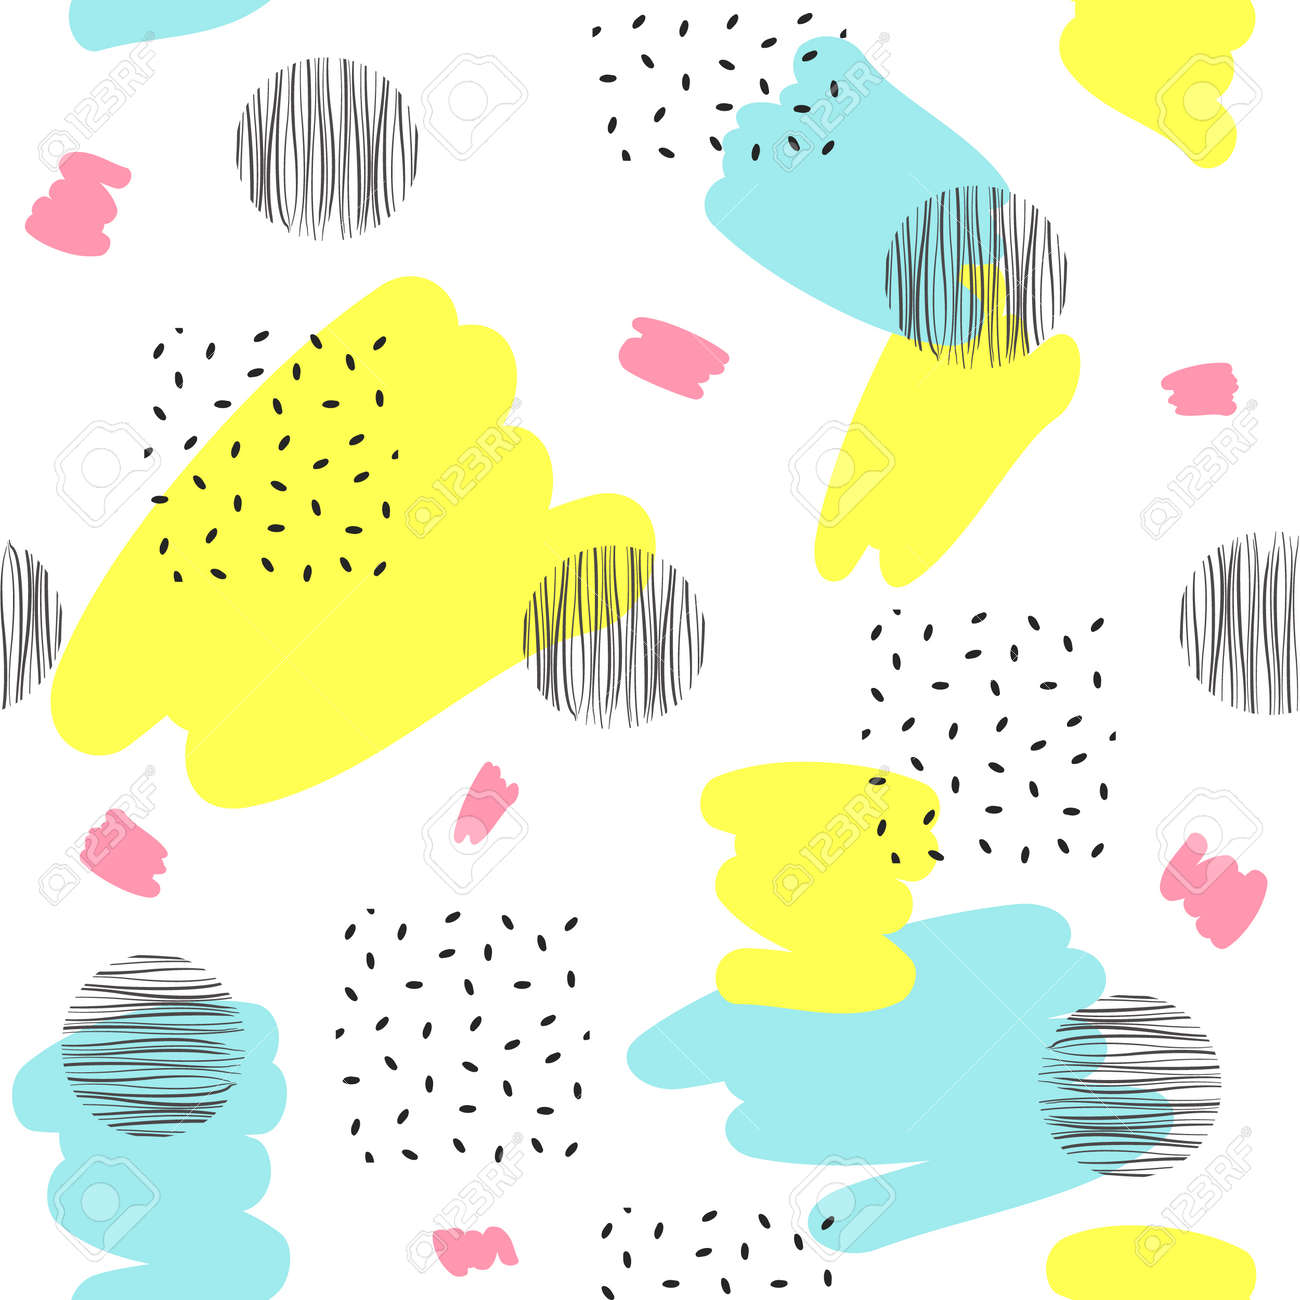 Abstract seamless patterns with black and color dots, spots. Vector illustration - 88355201